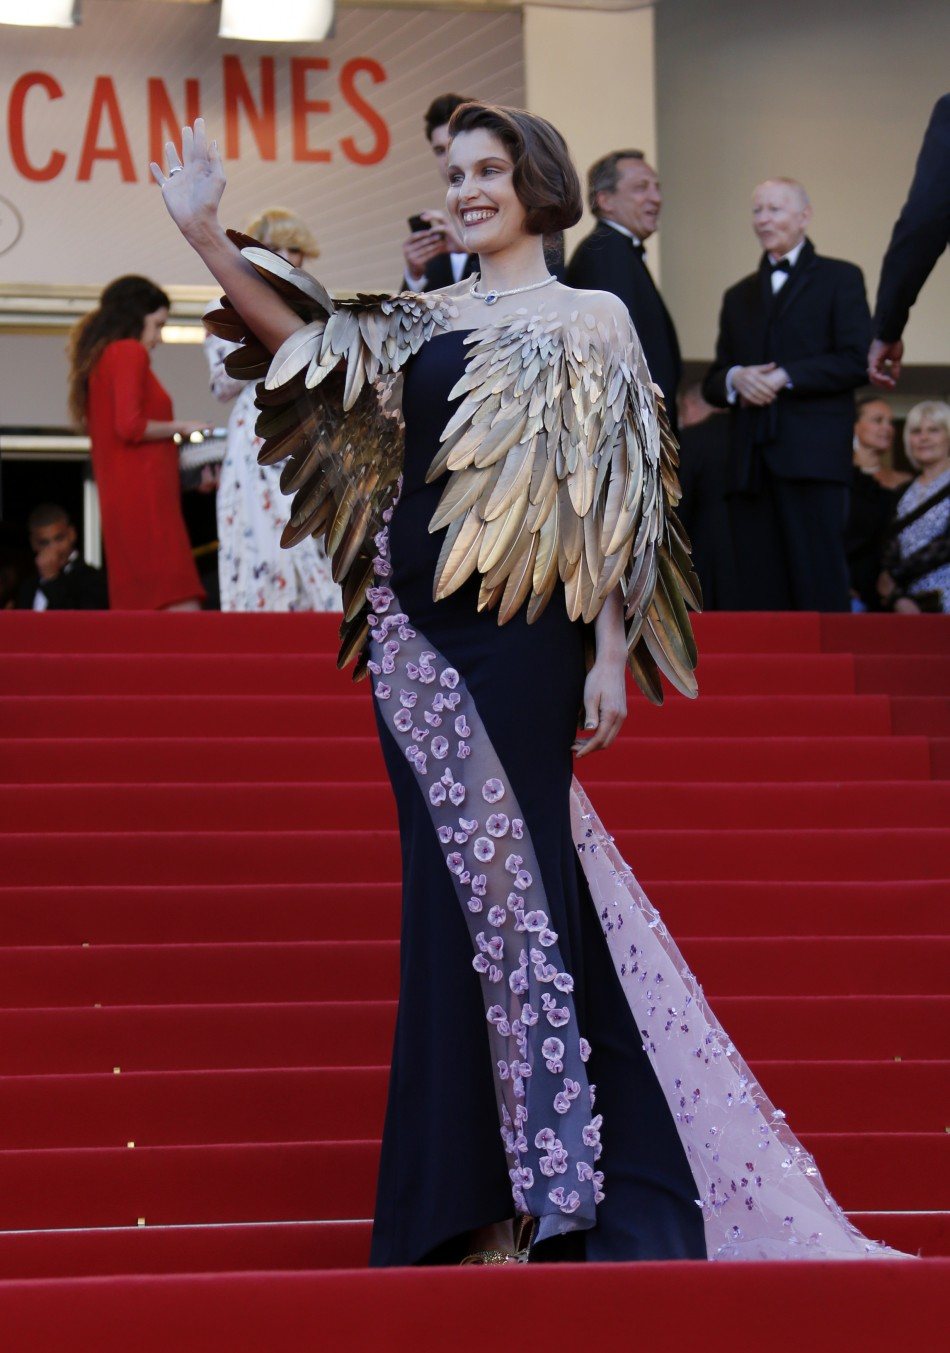 Actress Laetitia Casta poses on the red carpet as she arrives at the closing ceremony of the 66th Cannes Film Festival in Cannes May 26, 2013.